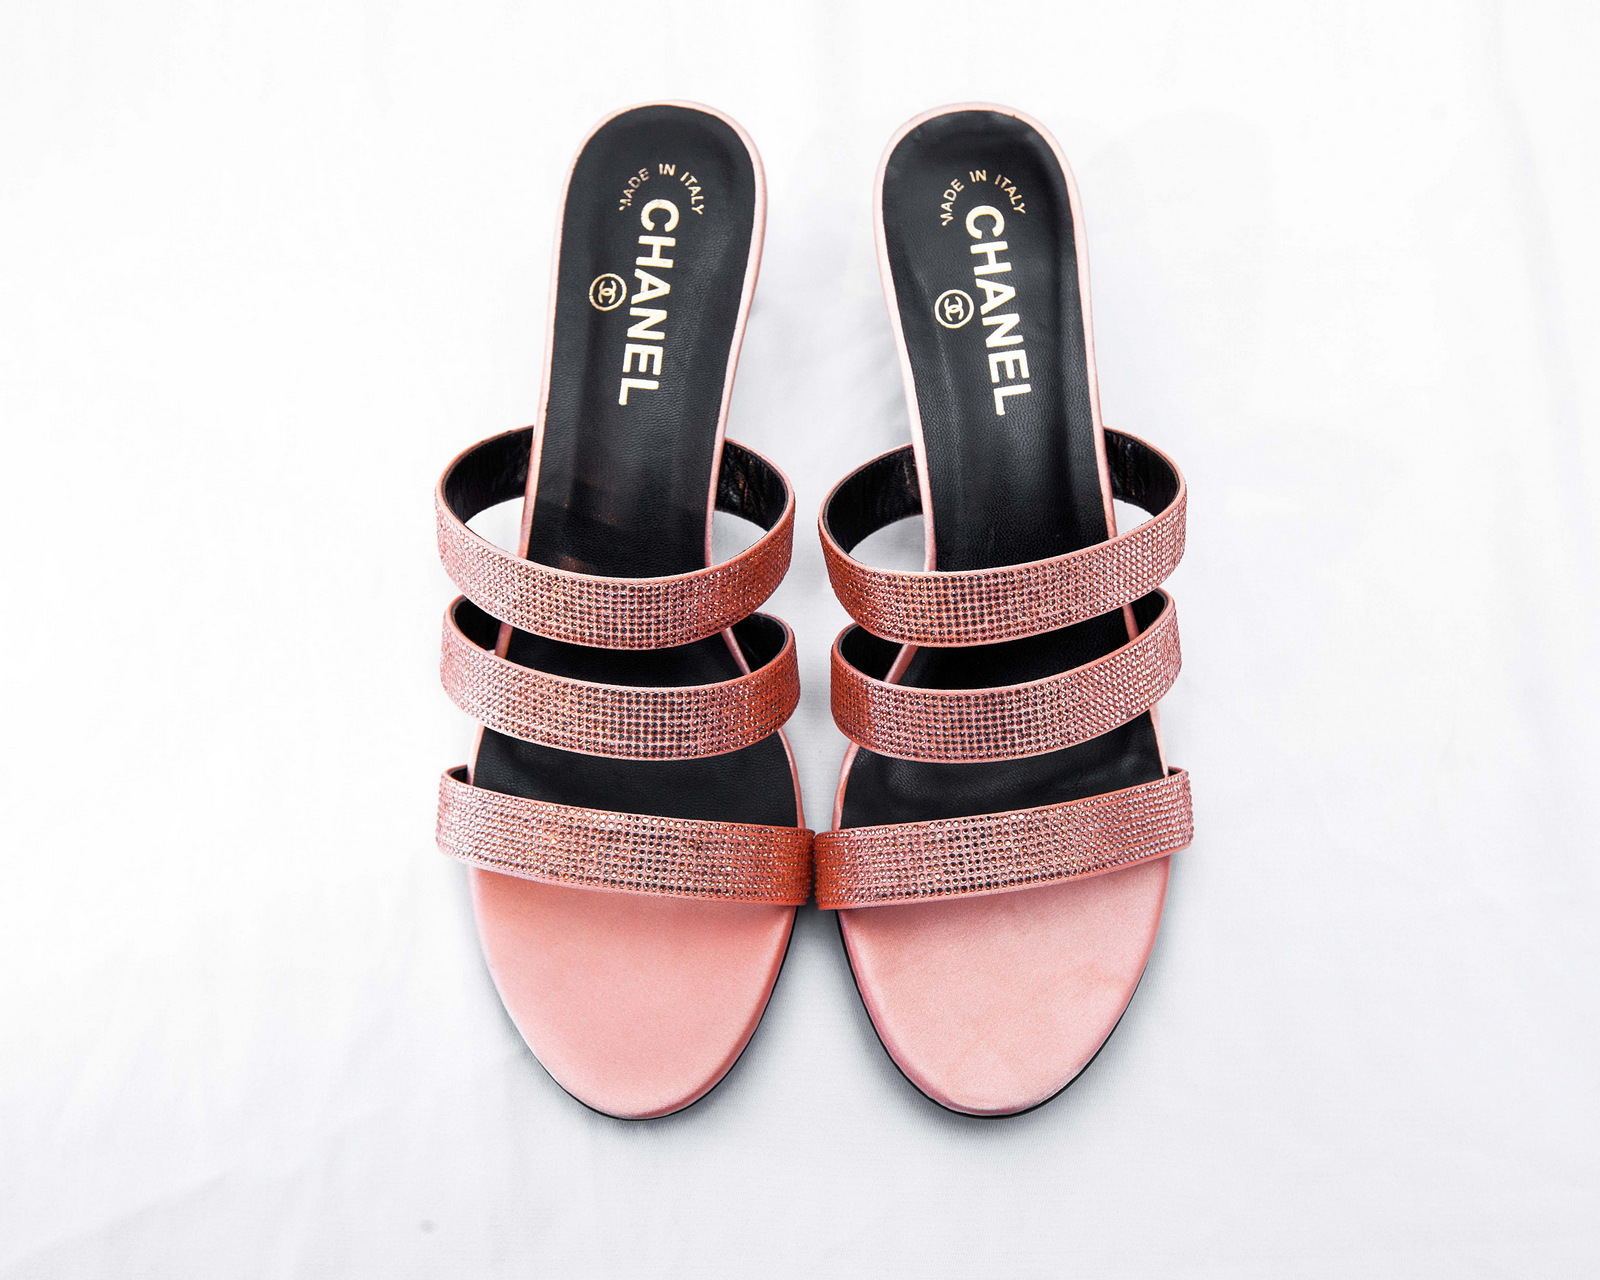 Chanel Slippers Kiki S Store